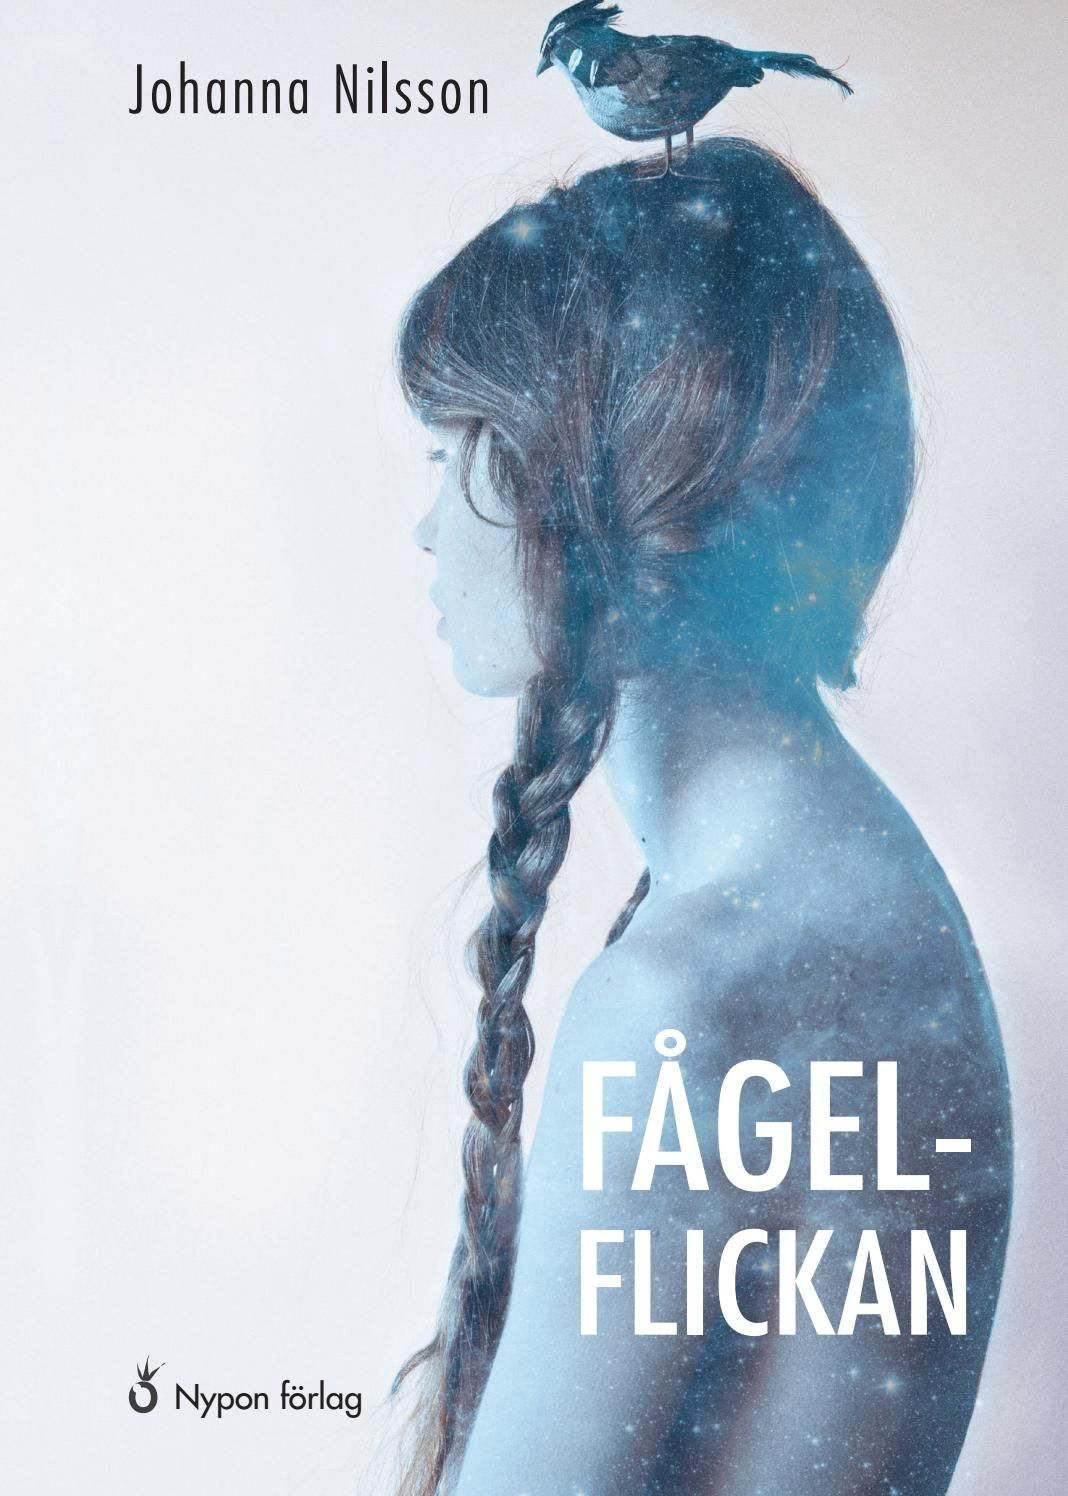 Fantastic quirky portrait by Marta Bevacqua out this week in Sweden on Johanna Nilsson's latest Novel 'Fågelflickan'! http://ow.ly/BOp93036W1x